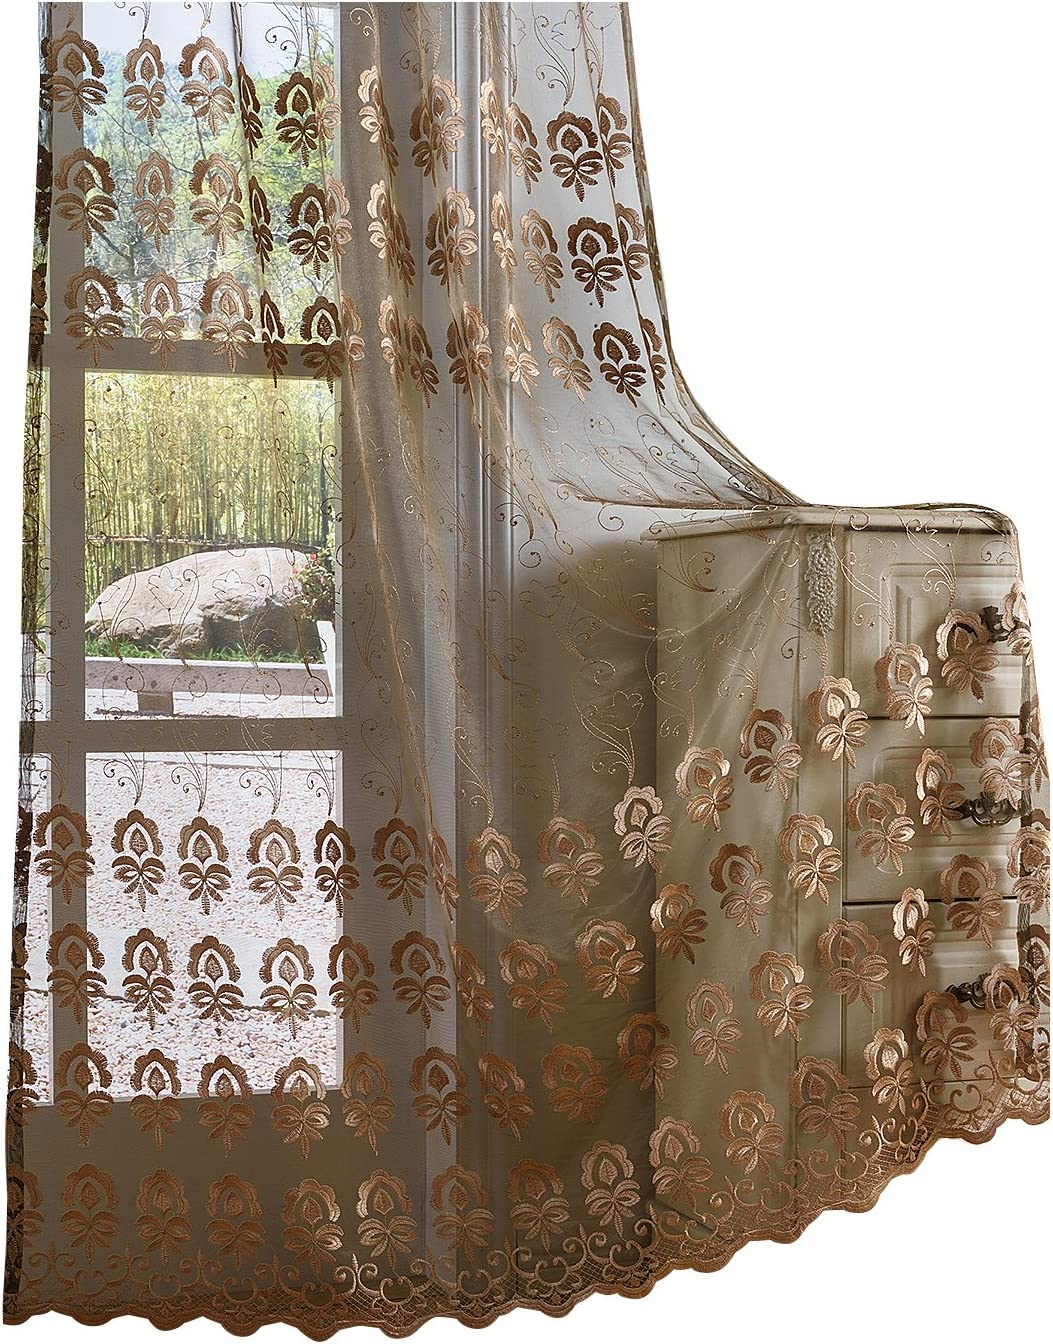 Reviewed: BW0057 Classic Europern Style Flower Embroidered Sheer Curtains Window Treatment Home Decoration Voile Panel